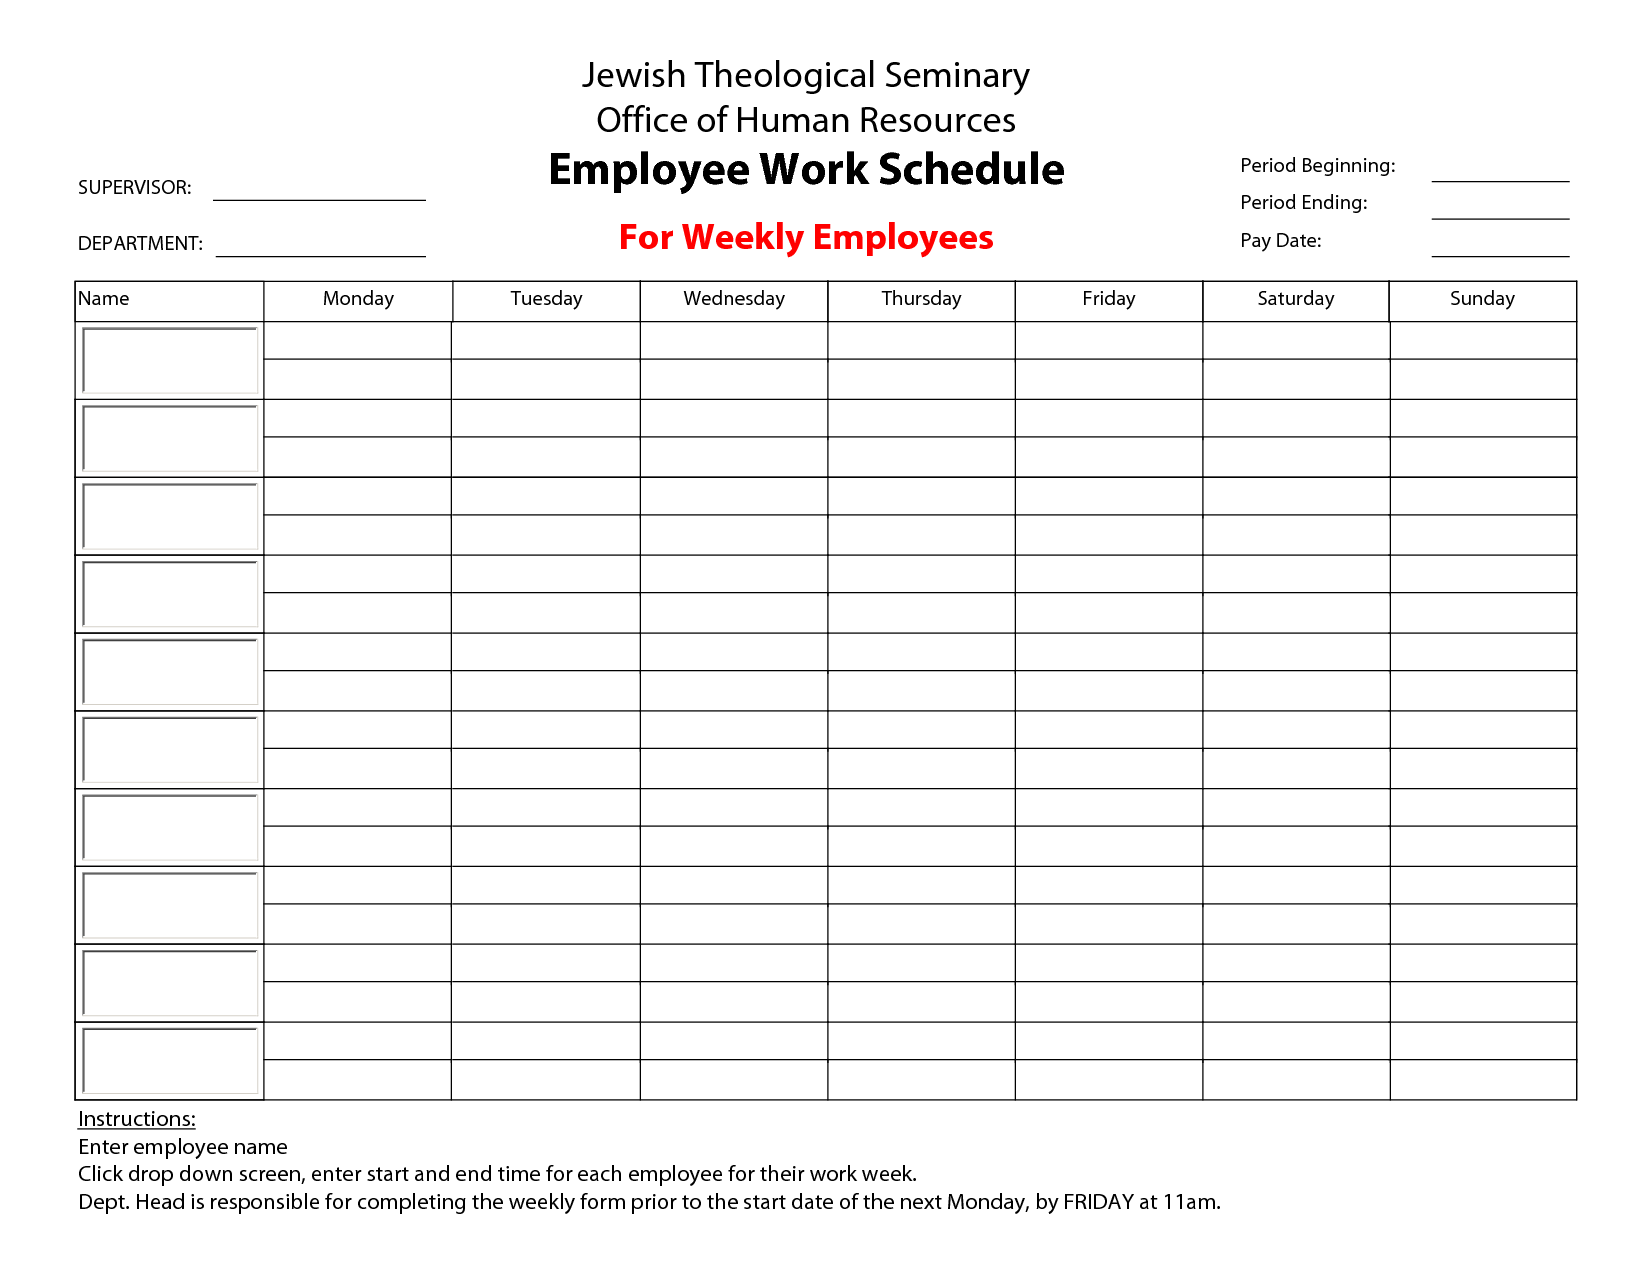 20 hour work week template employee work schedule for weekly 20 hour work week template employee work schedule for weekly employees print form jewish alramifo Image collections